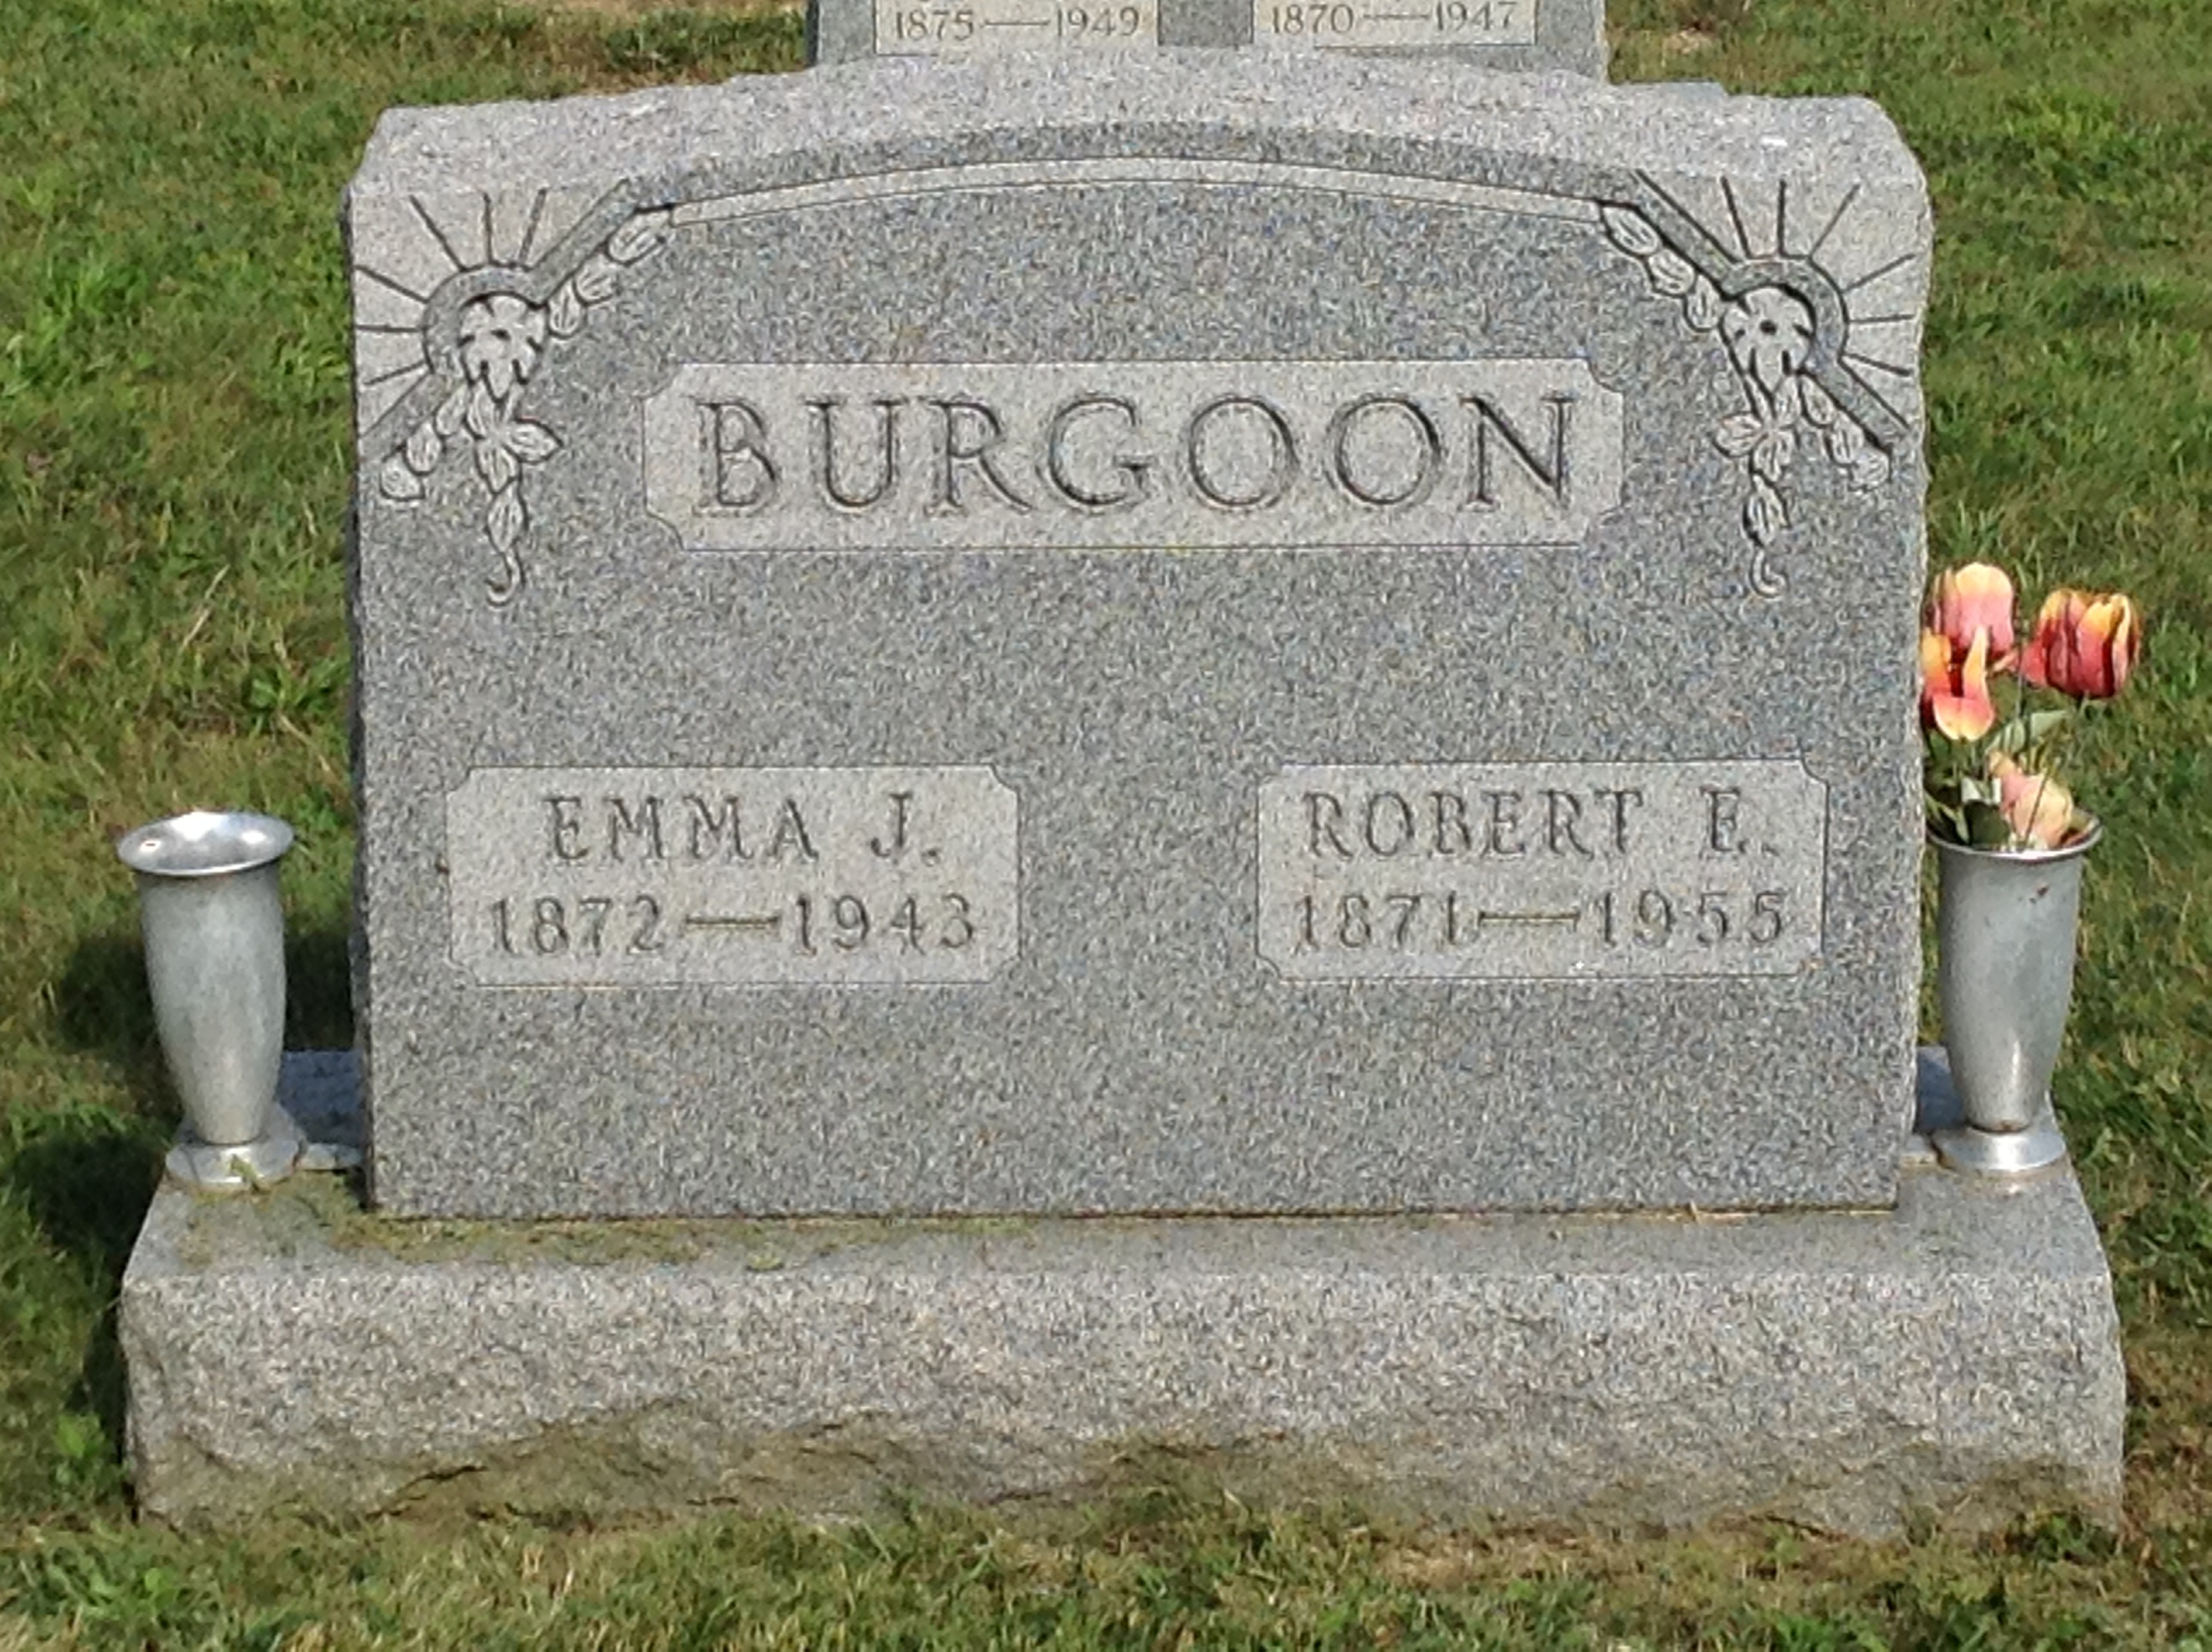 Emma J. Burgoon